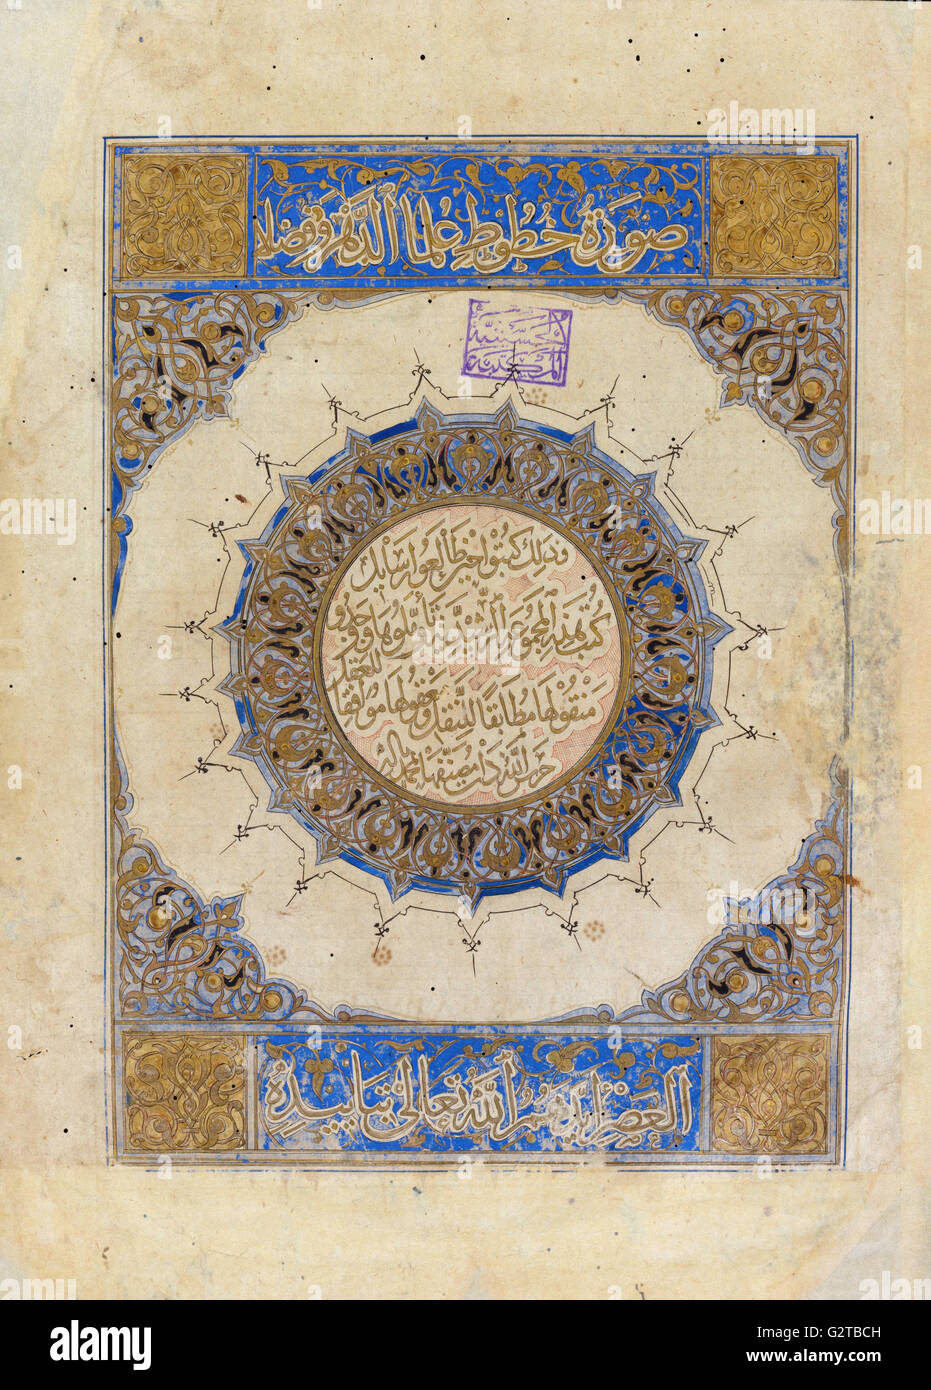 Unknown, Iran, 14th Century - Al-Majmu'at al-Rashidiyya (Theological Treatise) - - Stock Image